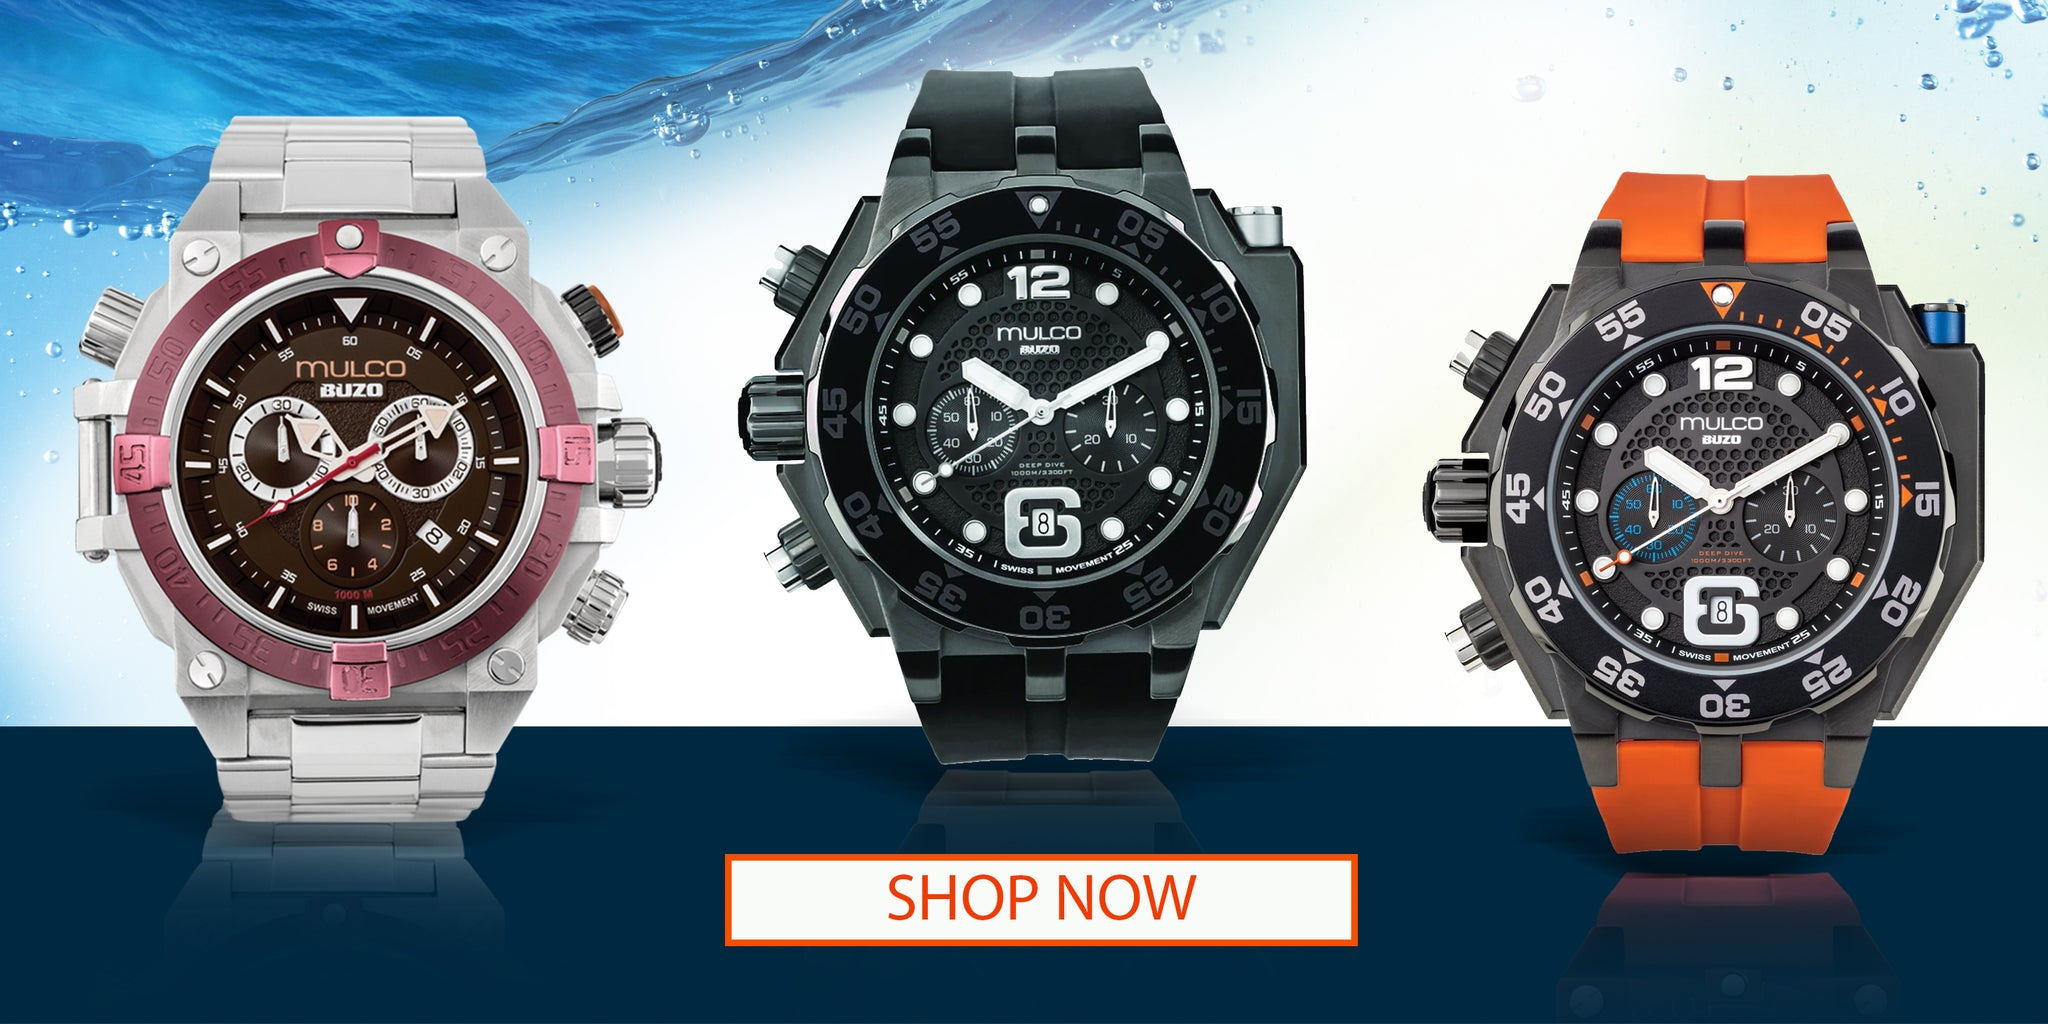 https://mulco.com/collections/mens-watches-buzo